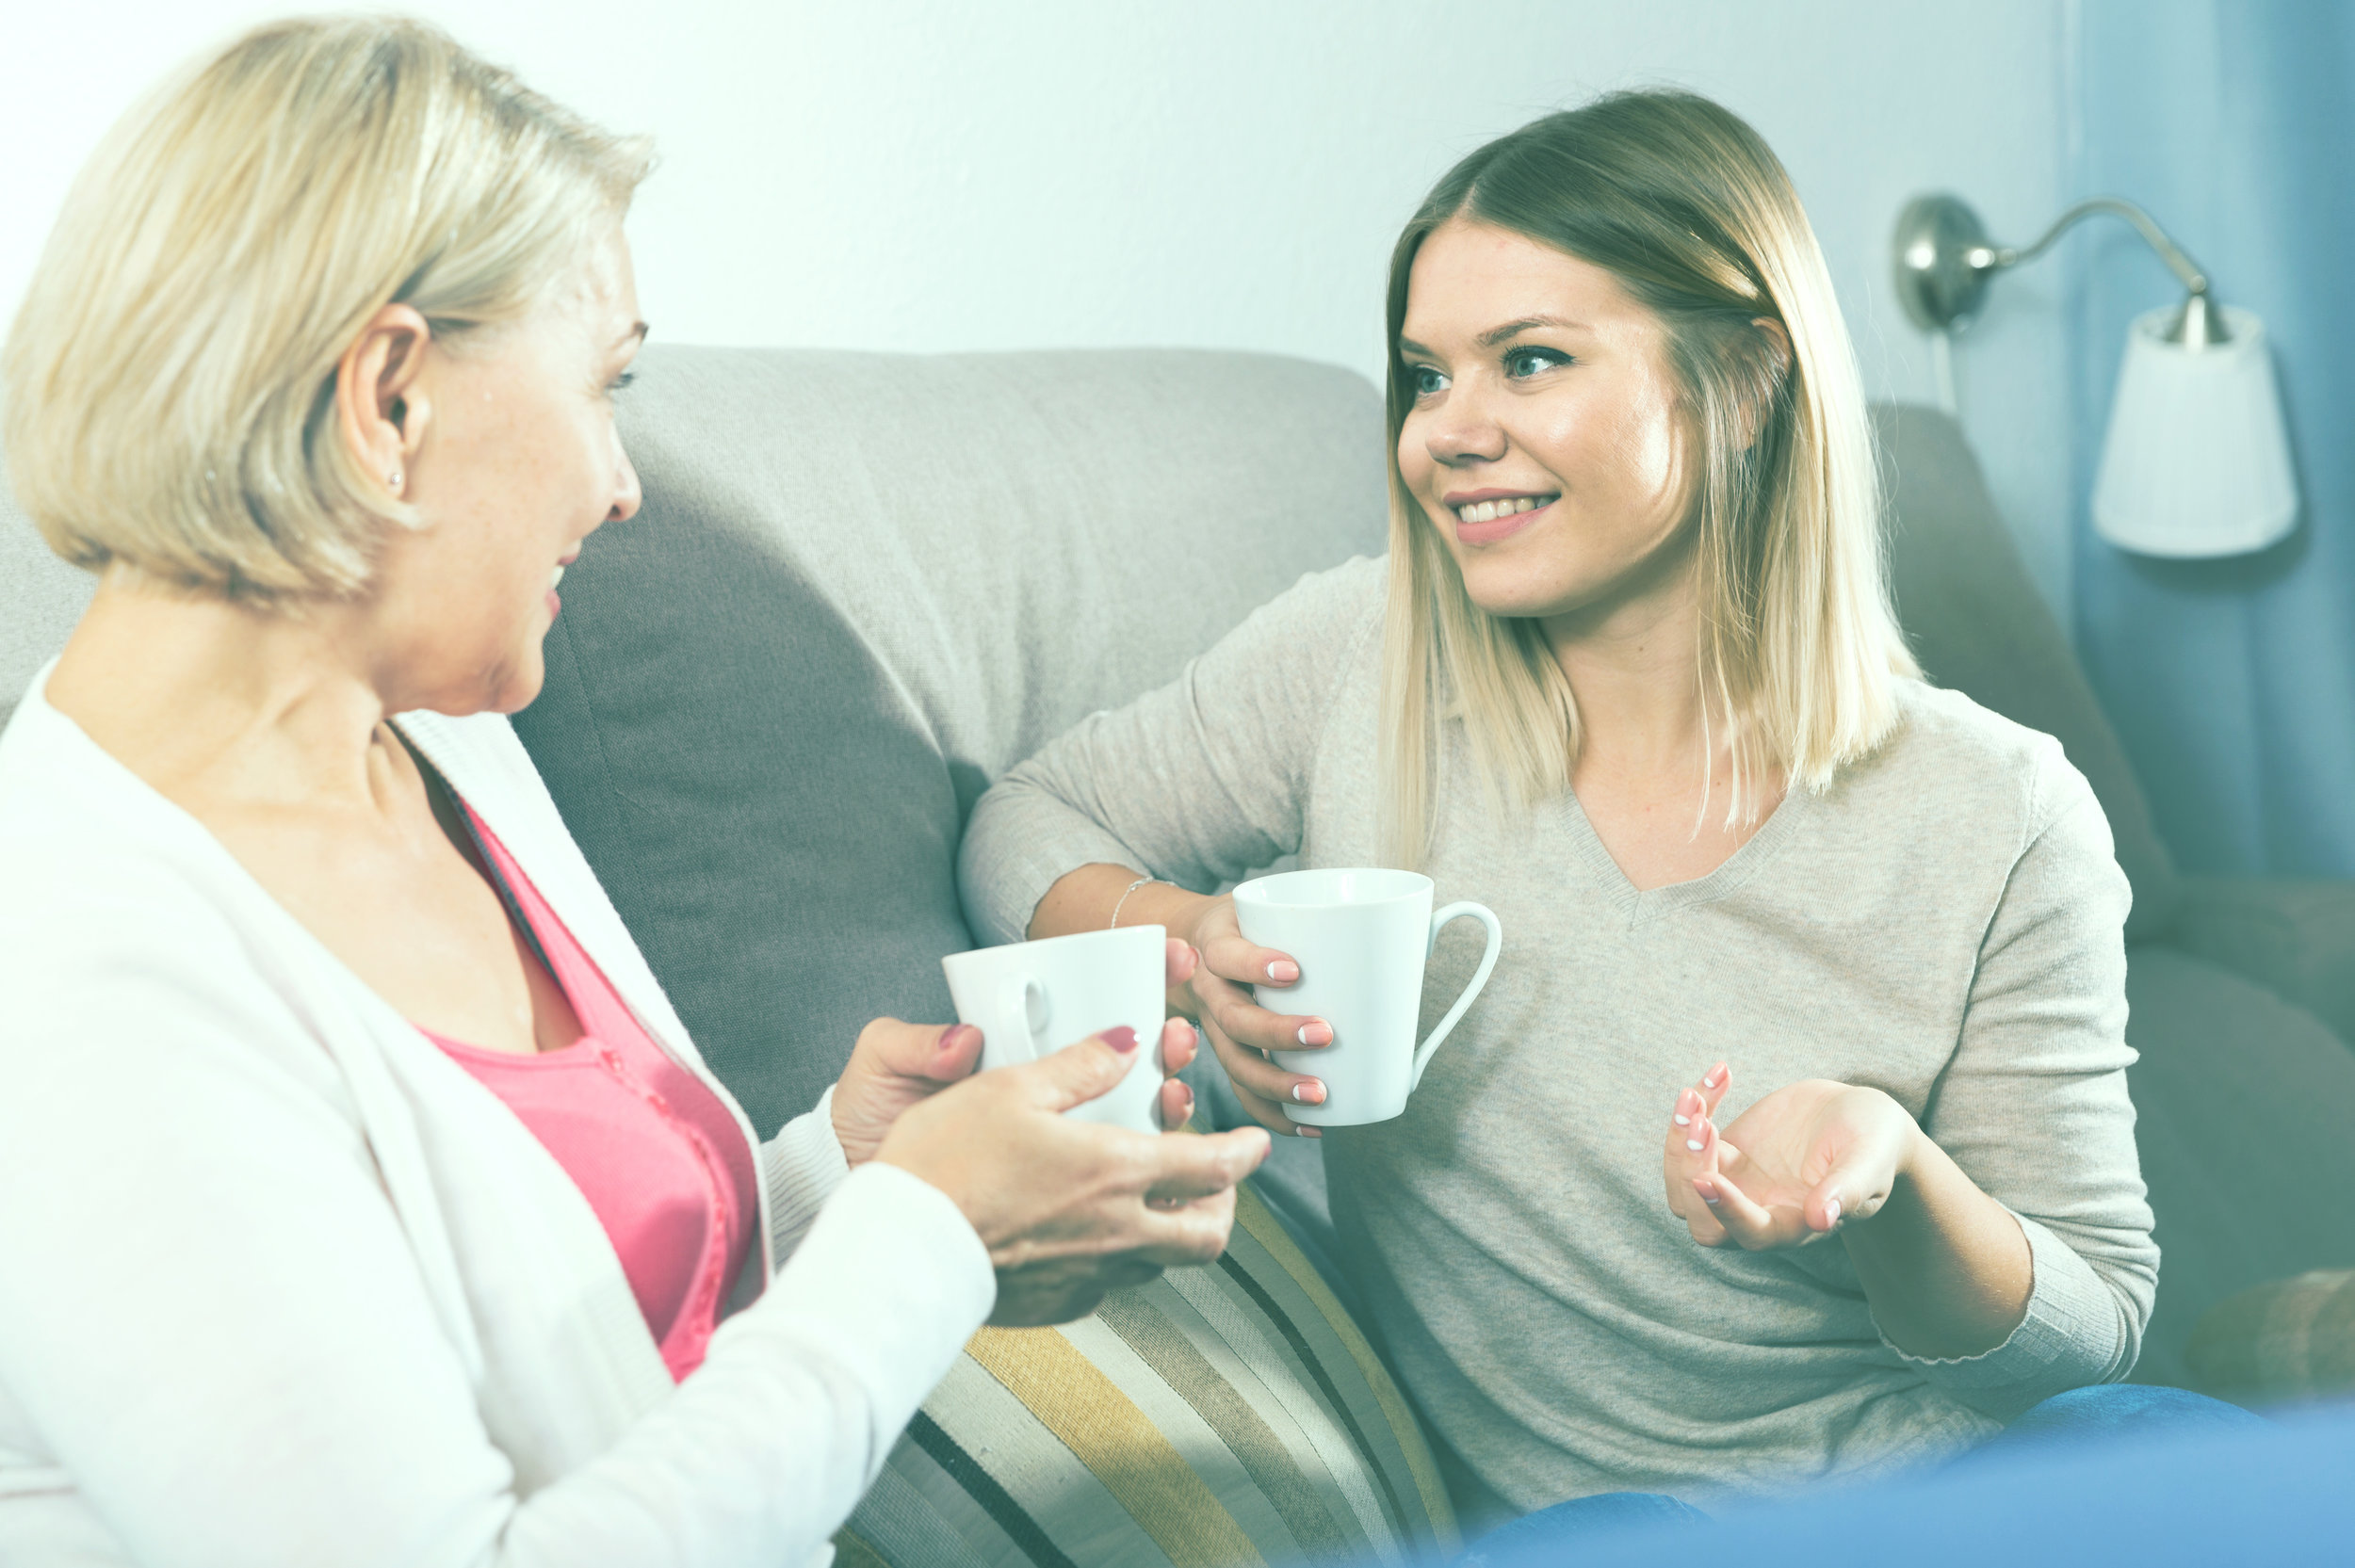 Mom-and-adult-daughter-talking-937407016_5478x3648.jpeg